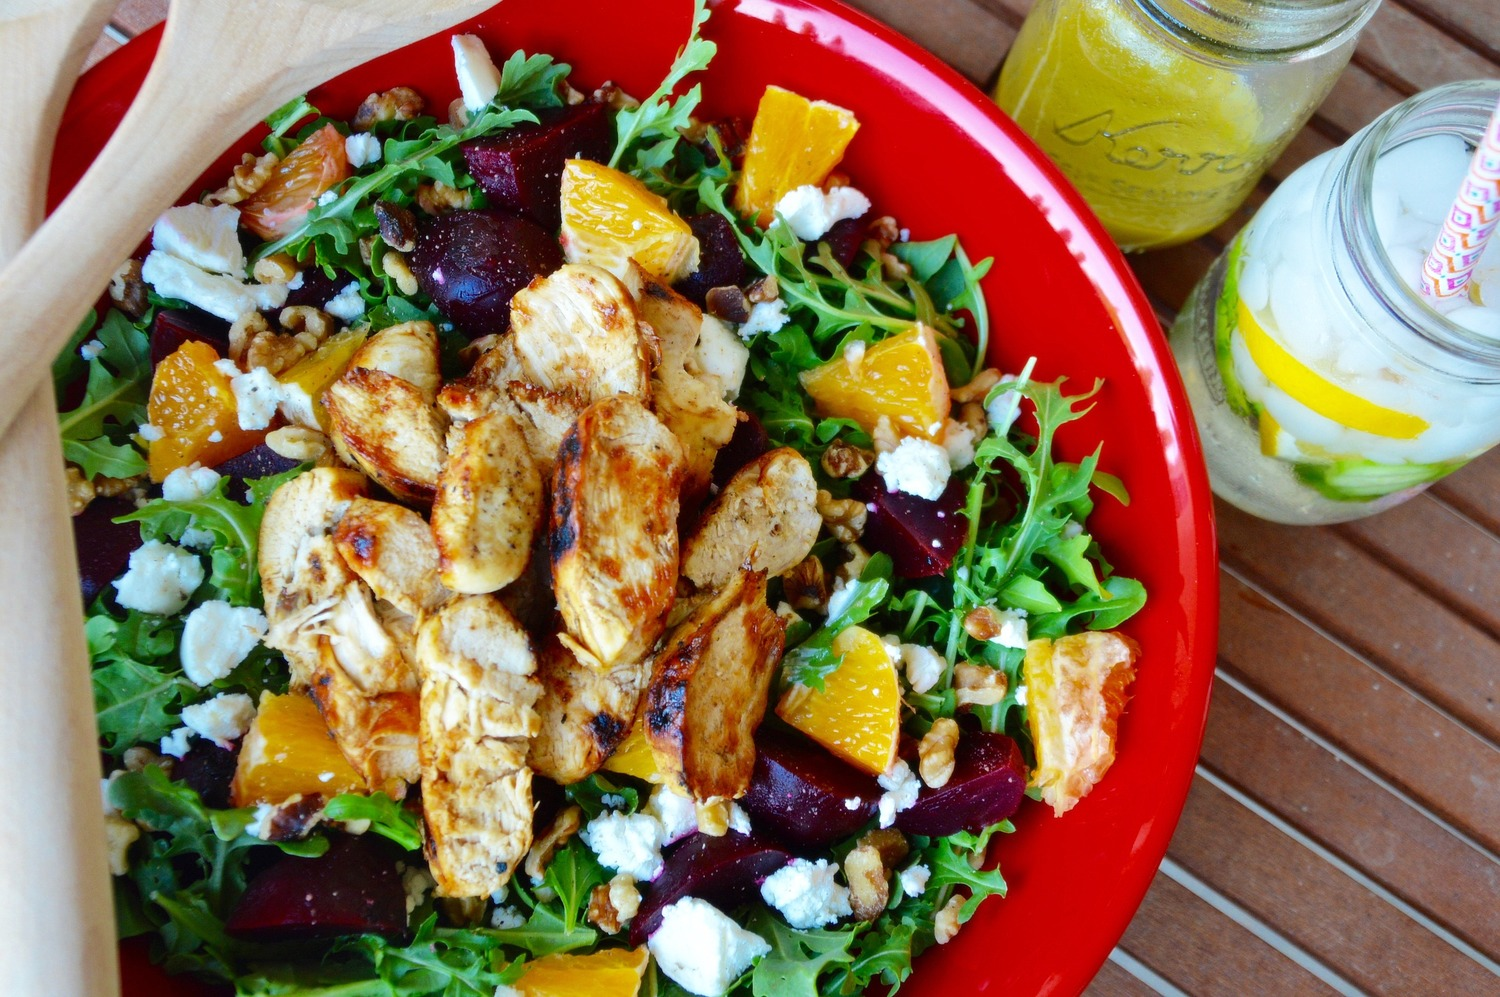 Grilled Chicken Beet & Goat Cheese Salad with Citrus Vinaigrette - by Kim's Fab Finds